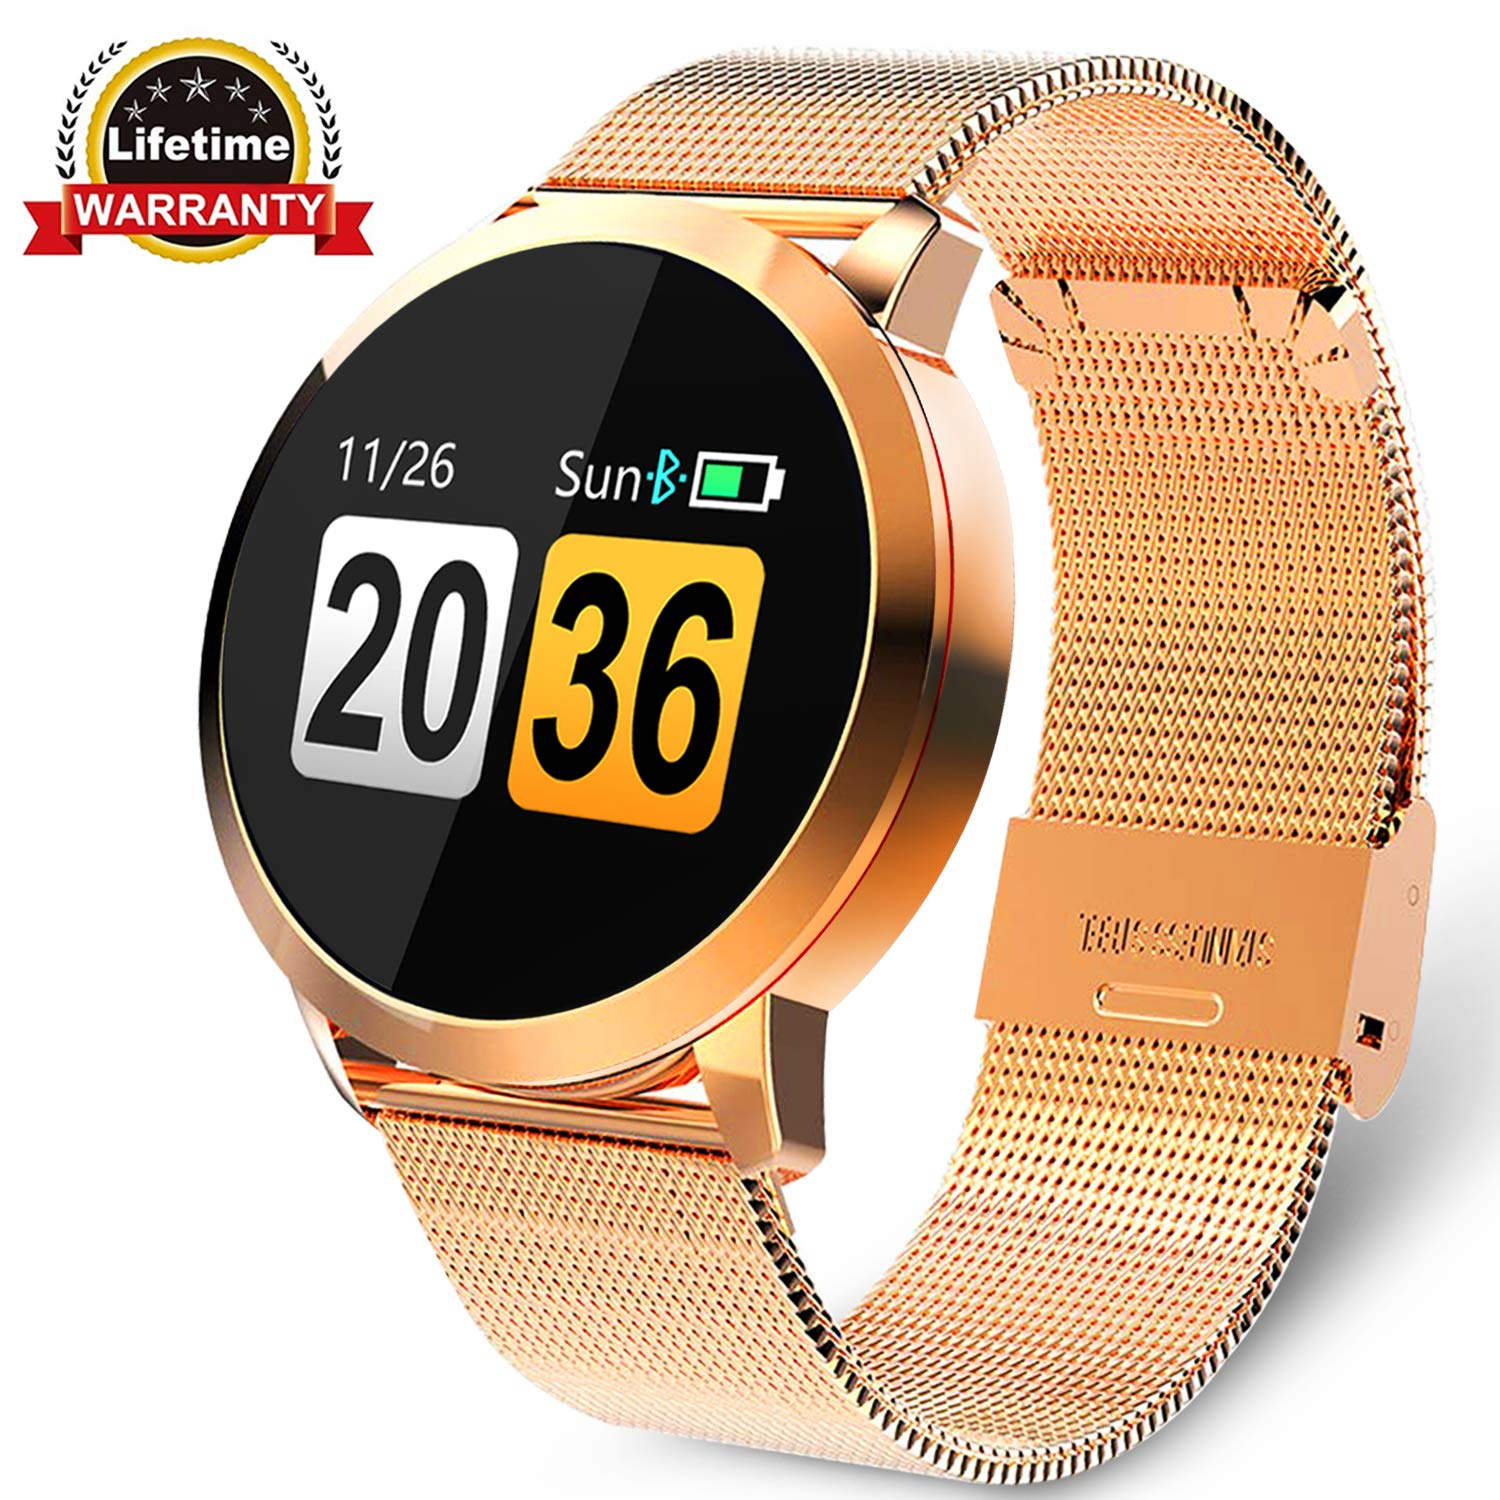 Fitness Tracker with Blood Pressure Monitor Bluetooth Smart Watch with Camera Touchscreen Waterproof Smartwatch Android iOS Heart Rate and Activity Tracking Birthday Gifts for Her His - Gold